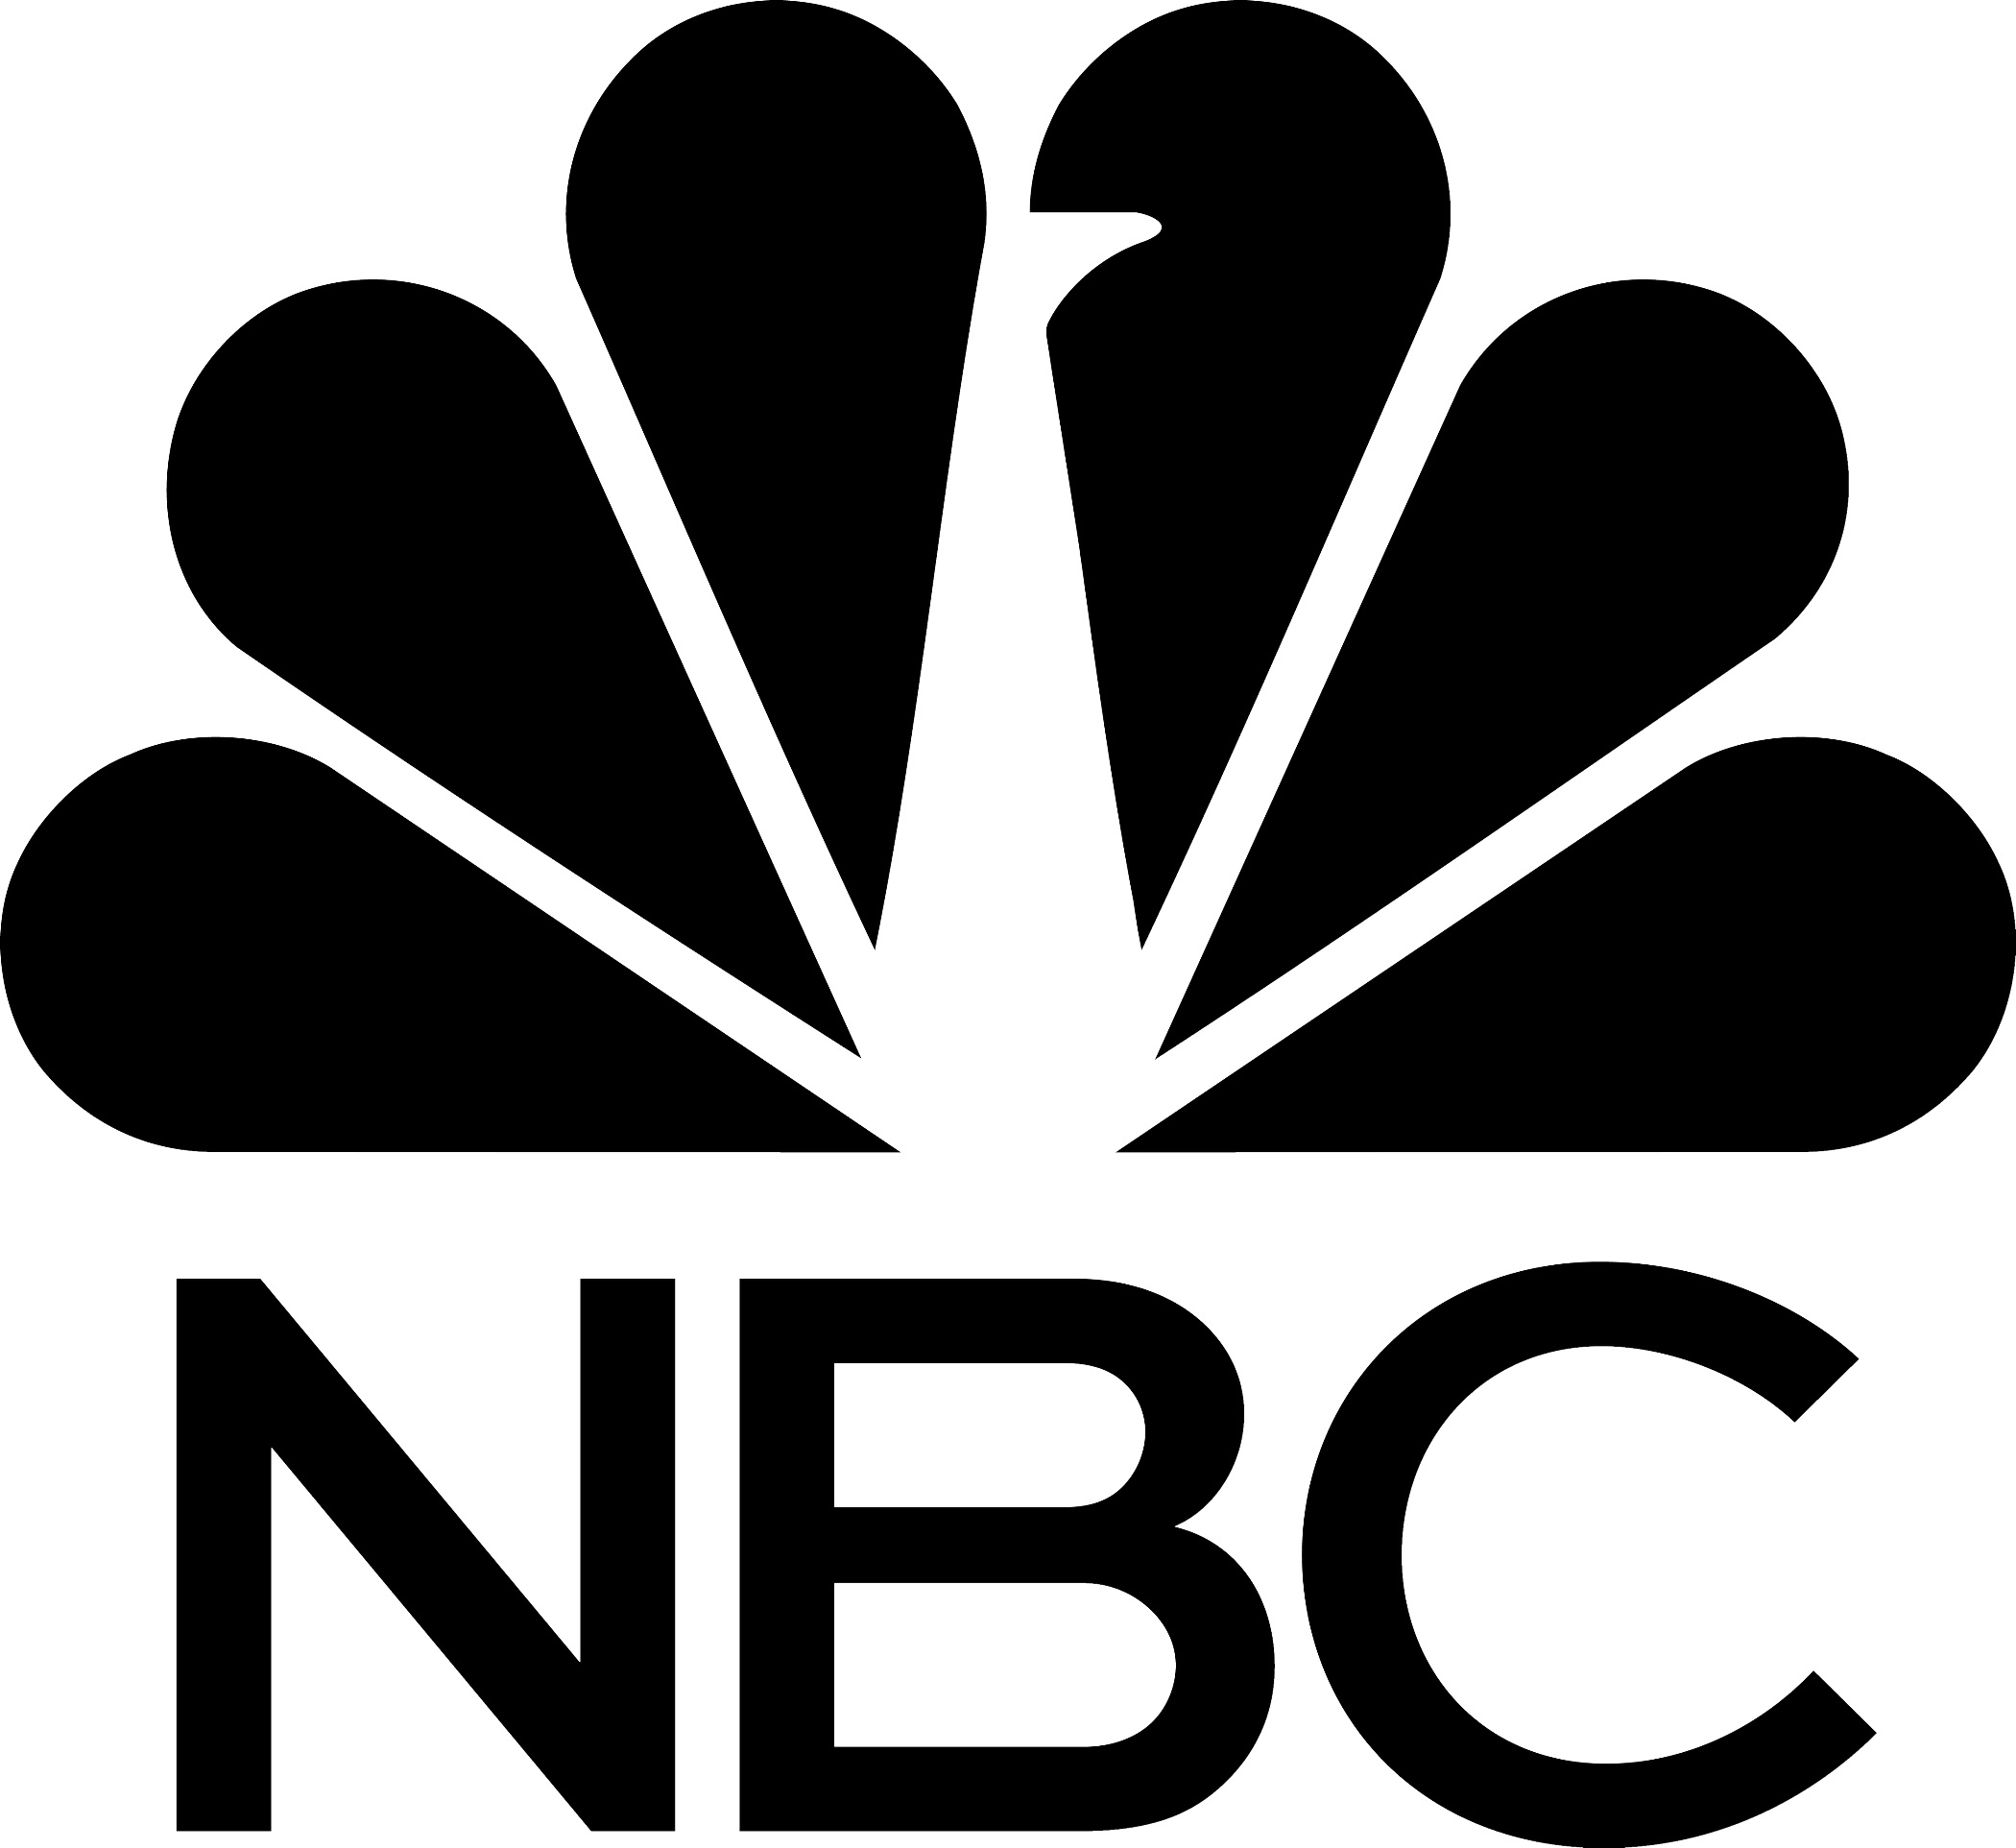 NBC-Logo-PNG-Vector-Free-Download copy.jpg